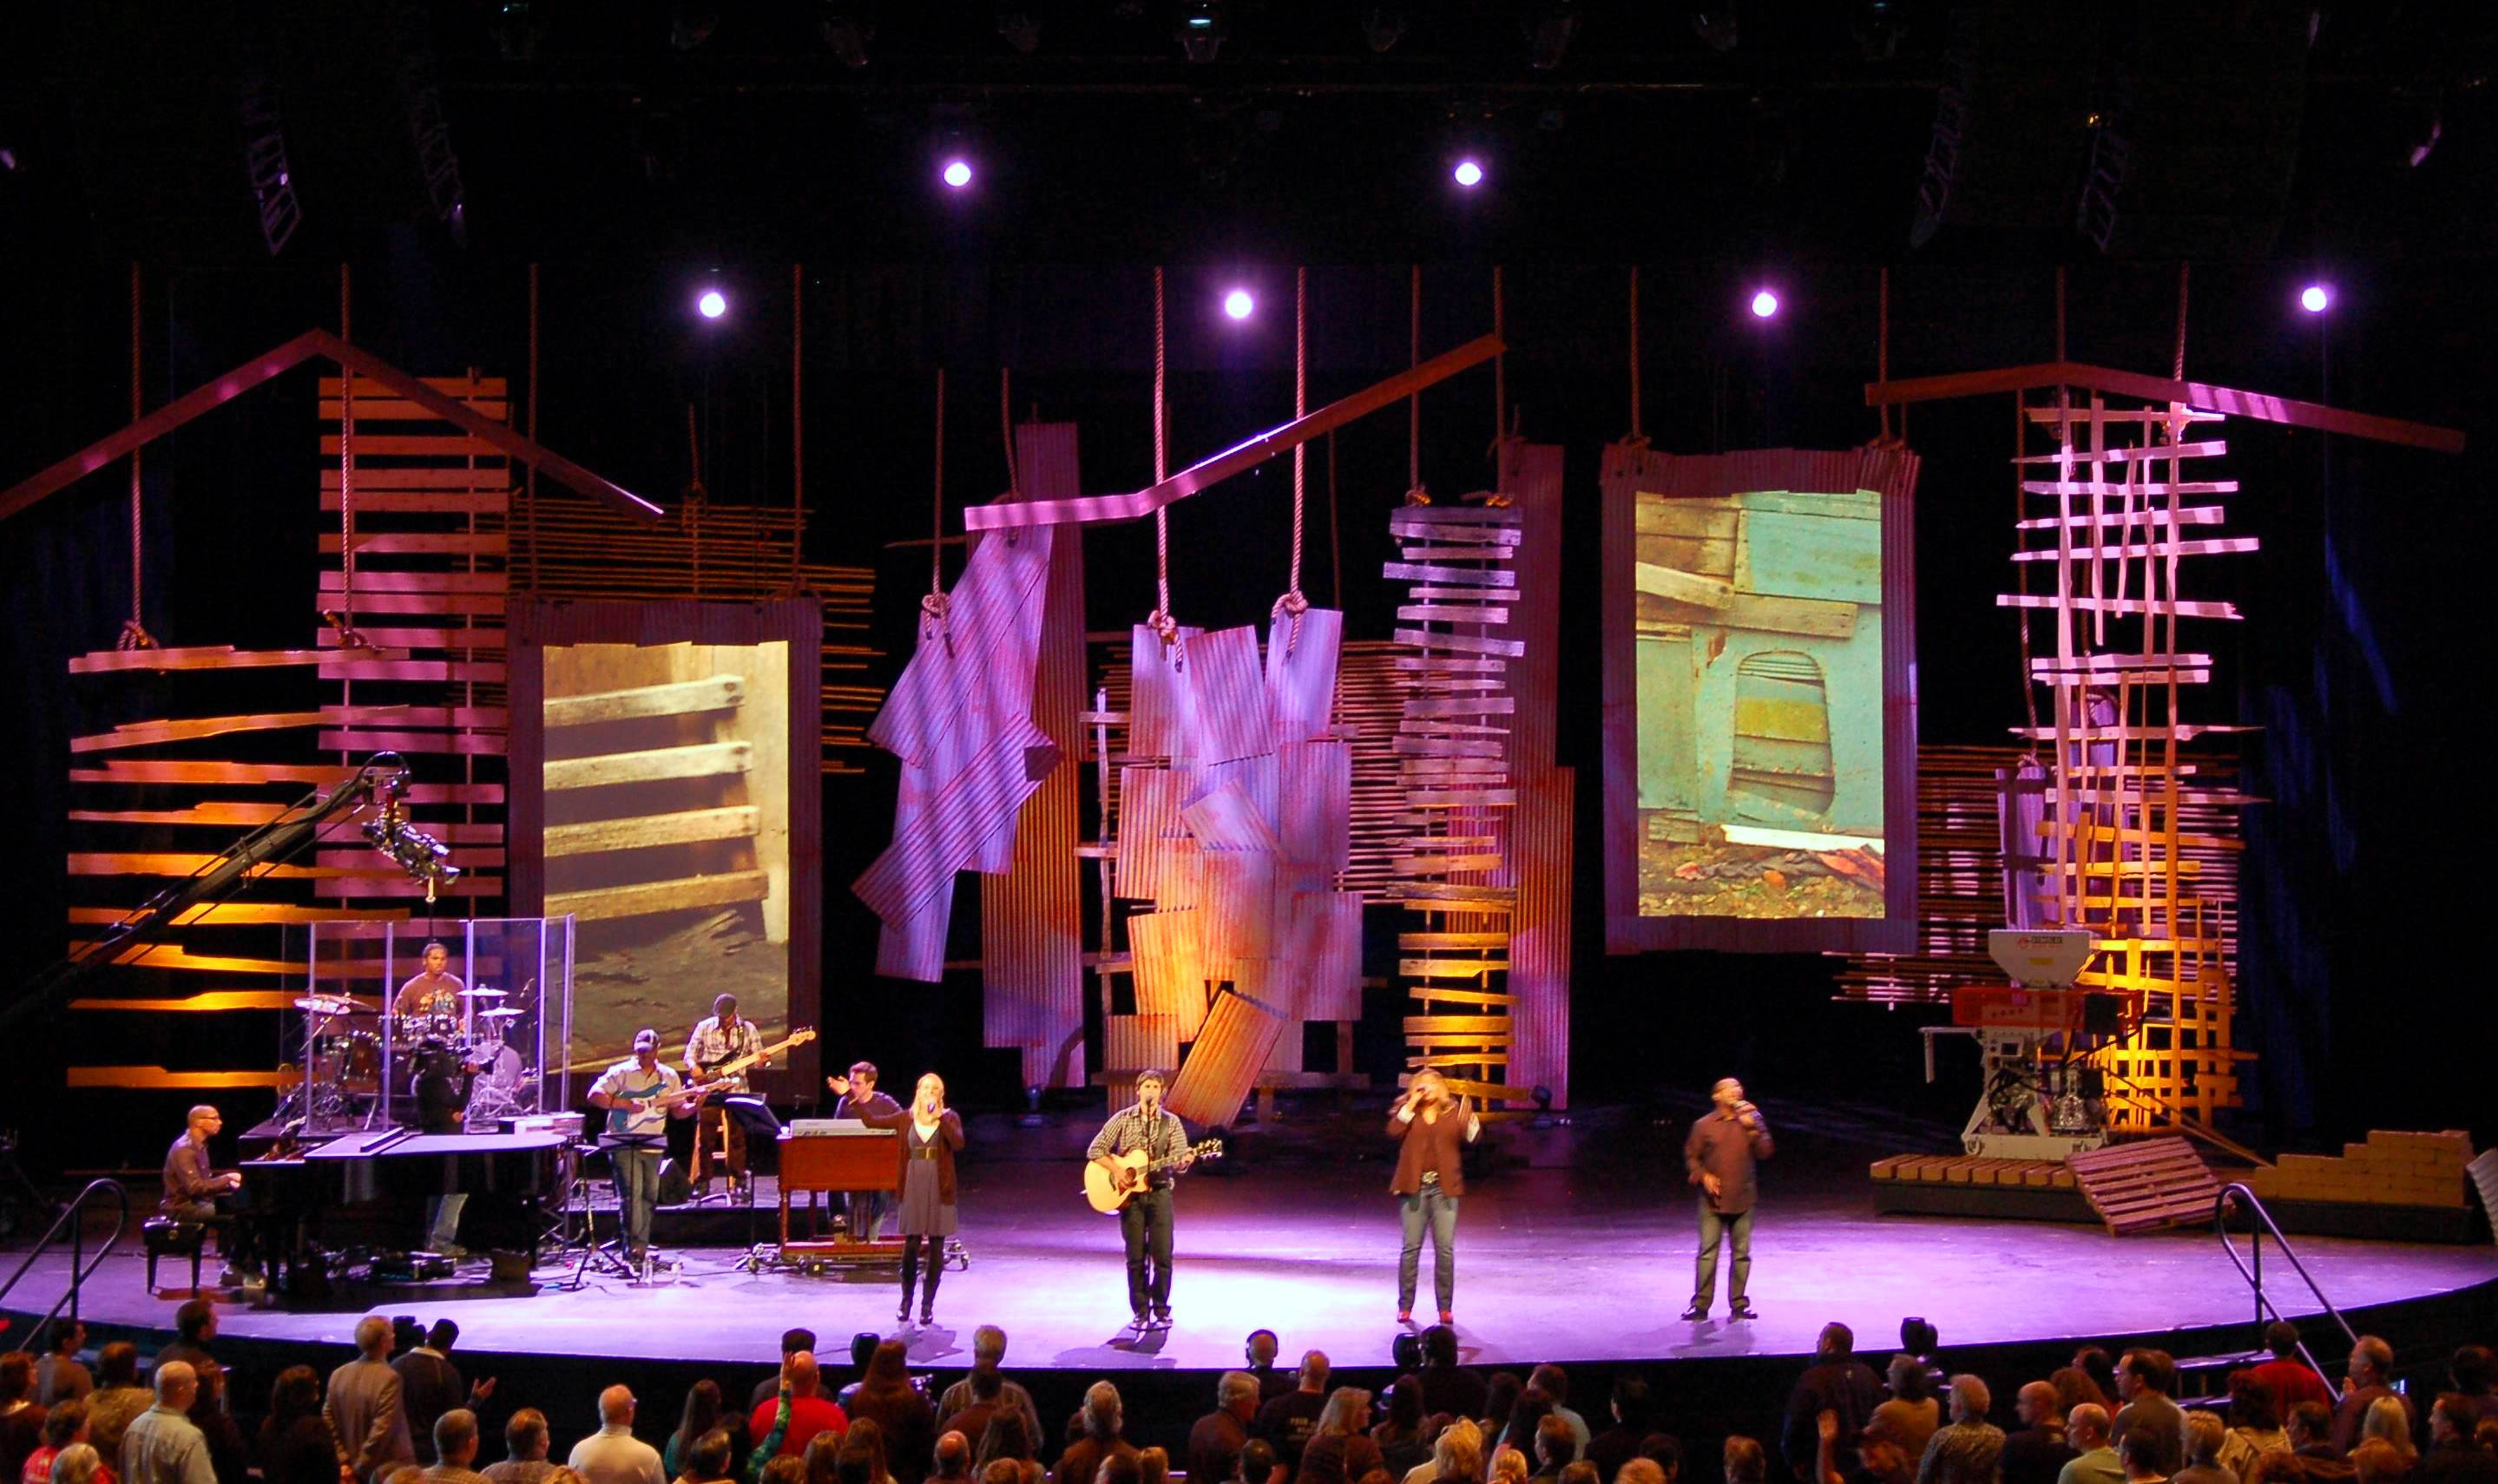 17 best ideas about kids church stage on pinterest stage decorations church stage and kids church rooms concert stage design - Concert Stage Design Ideas